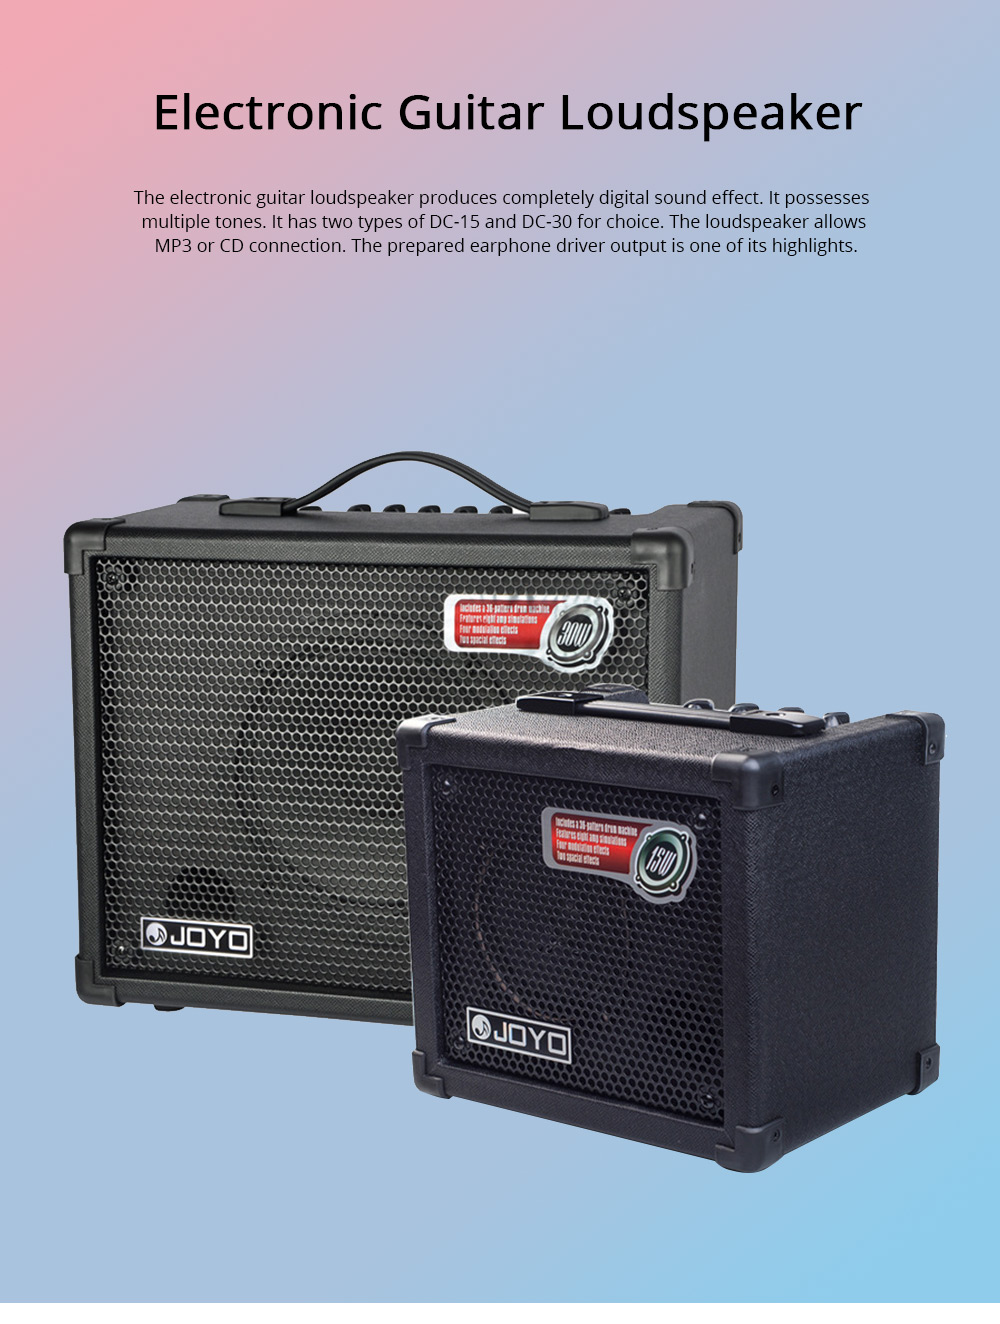 Electronic Guitar Loudspeaker with Digital Sound Effect Multi-timbral Guitar Loudspeaker Box Baffle Box 0